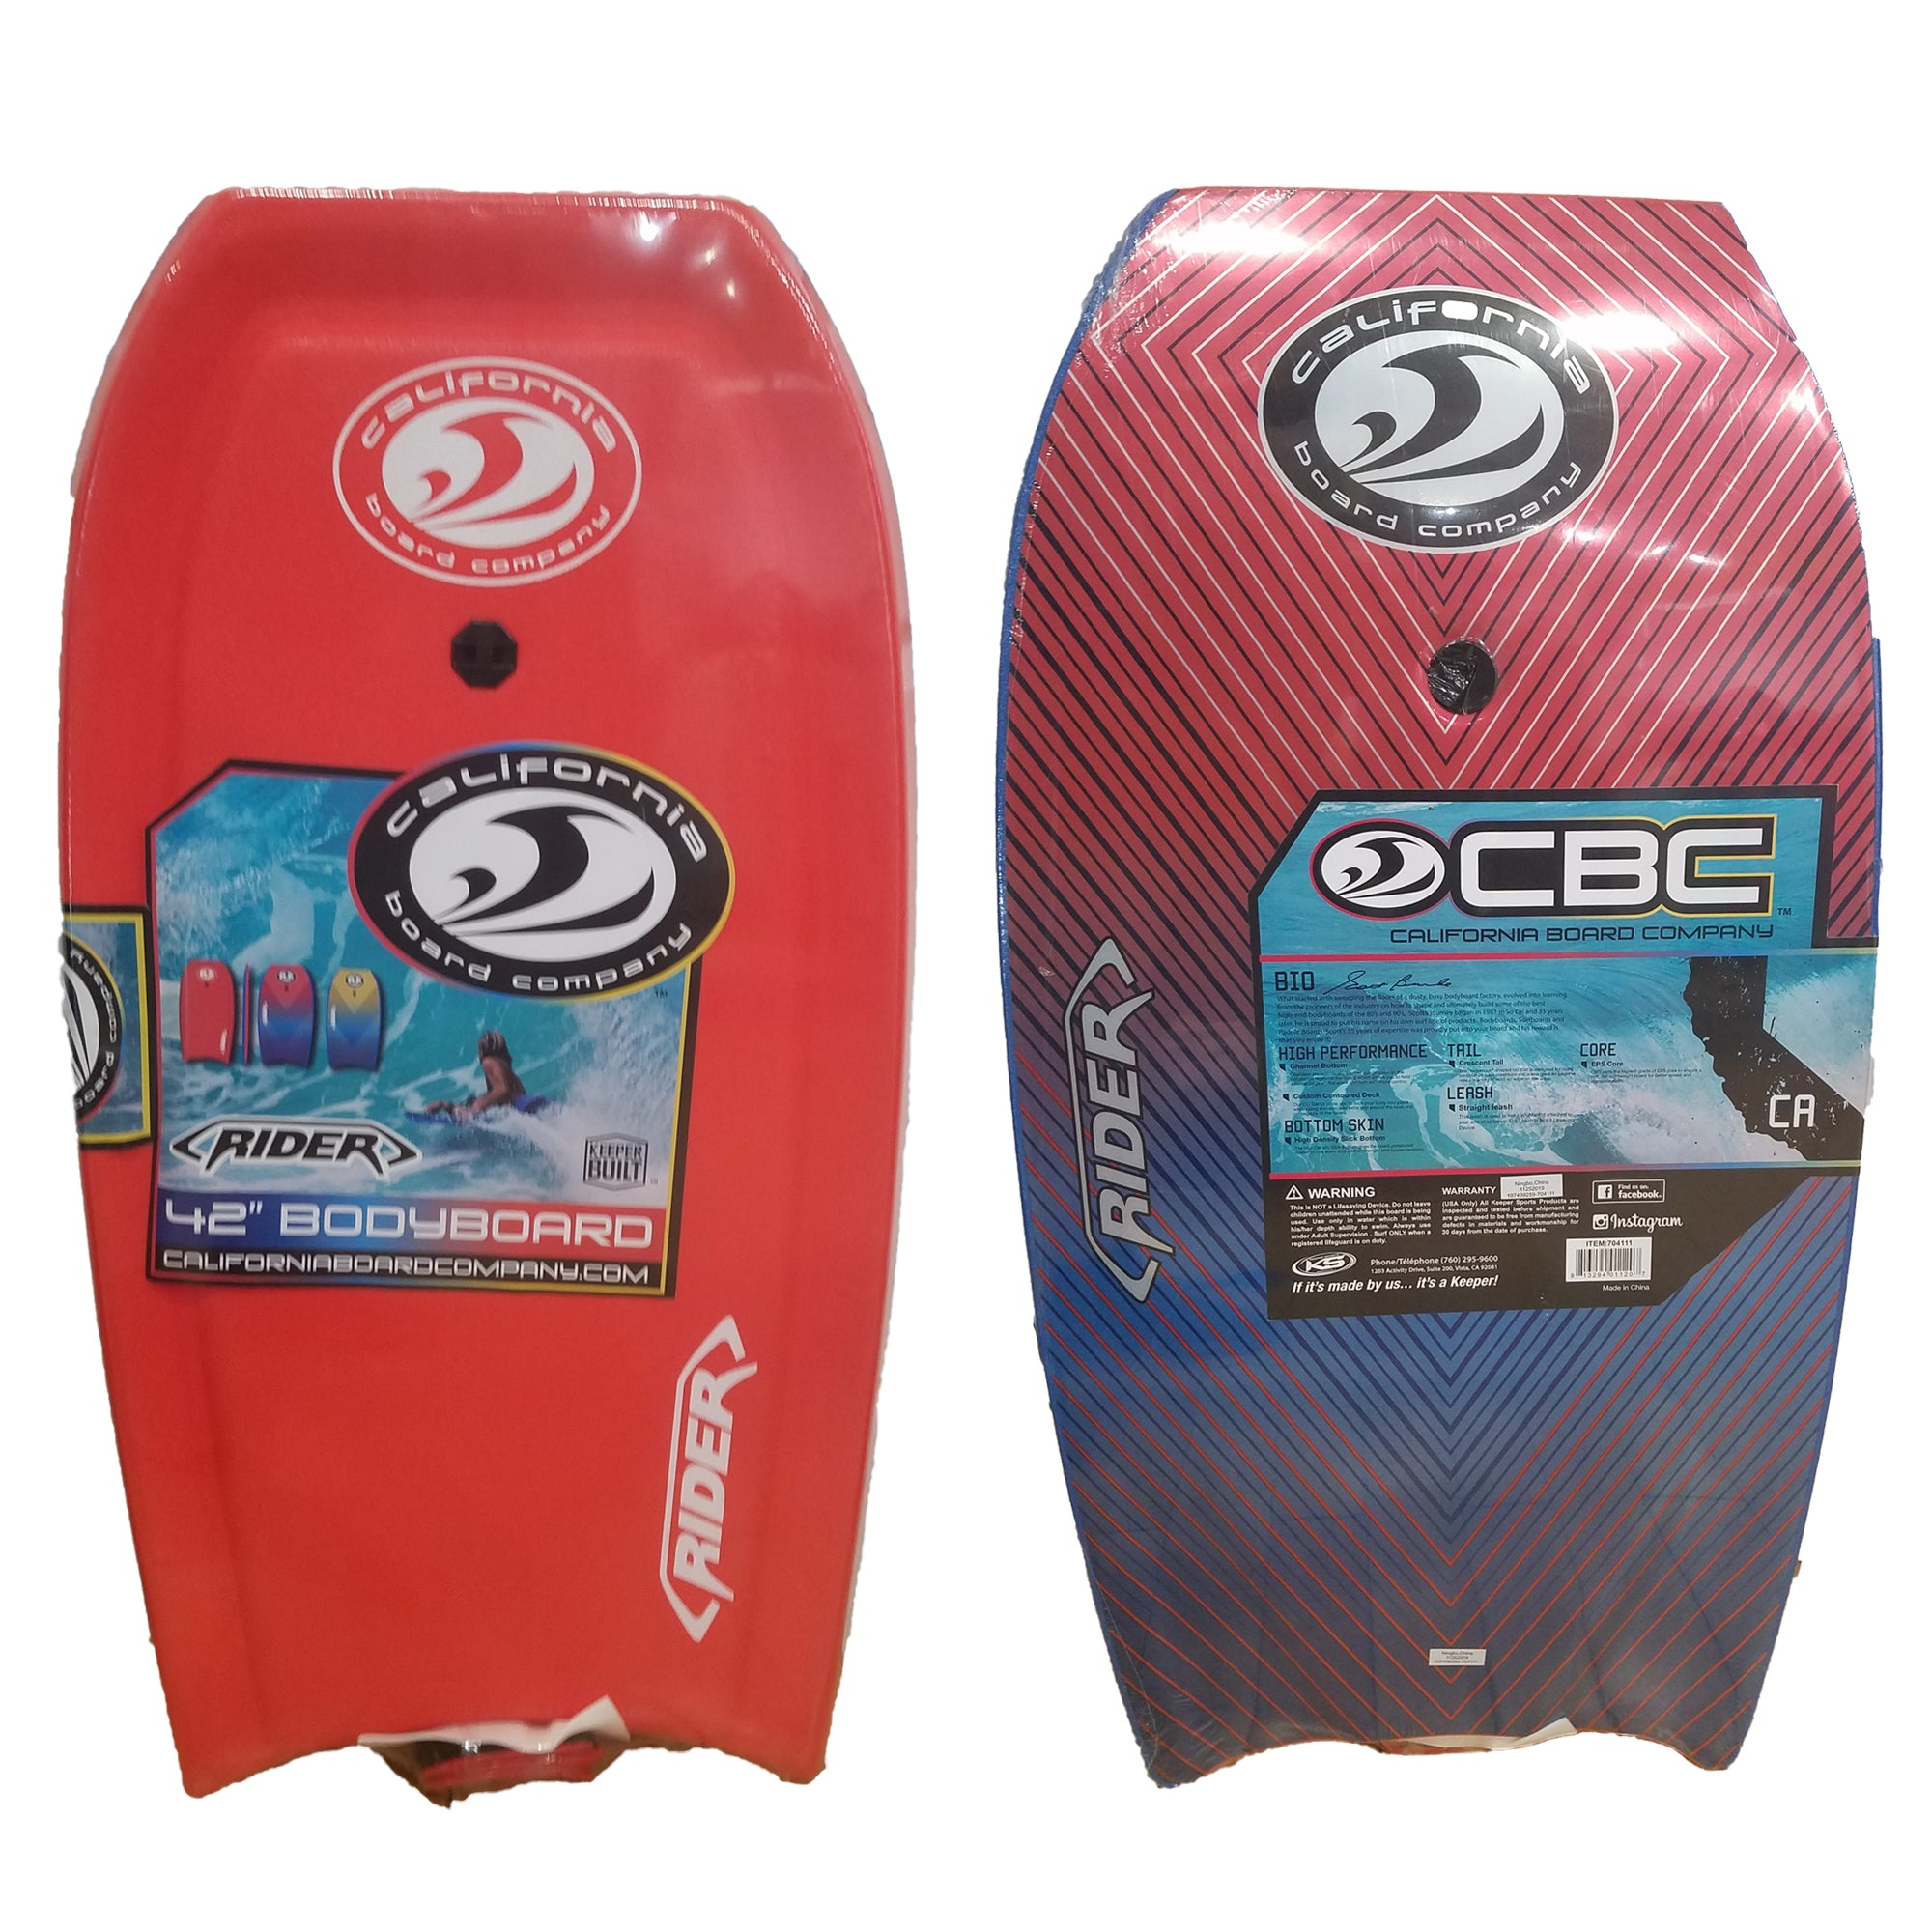 "California Board Company Rider 42"" Bodyboard - Red / Blue"